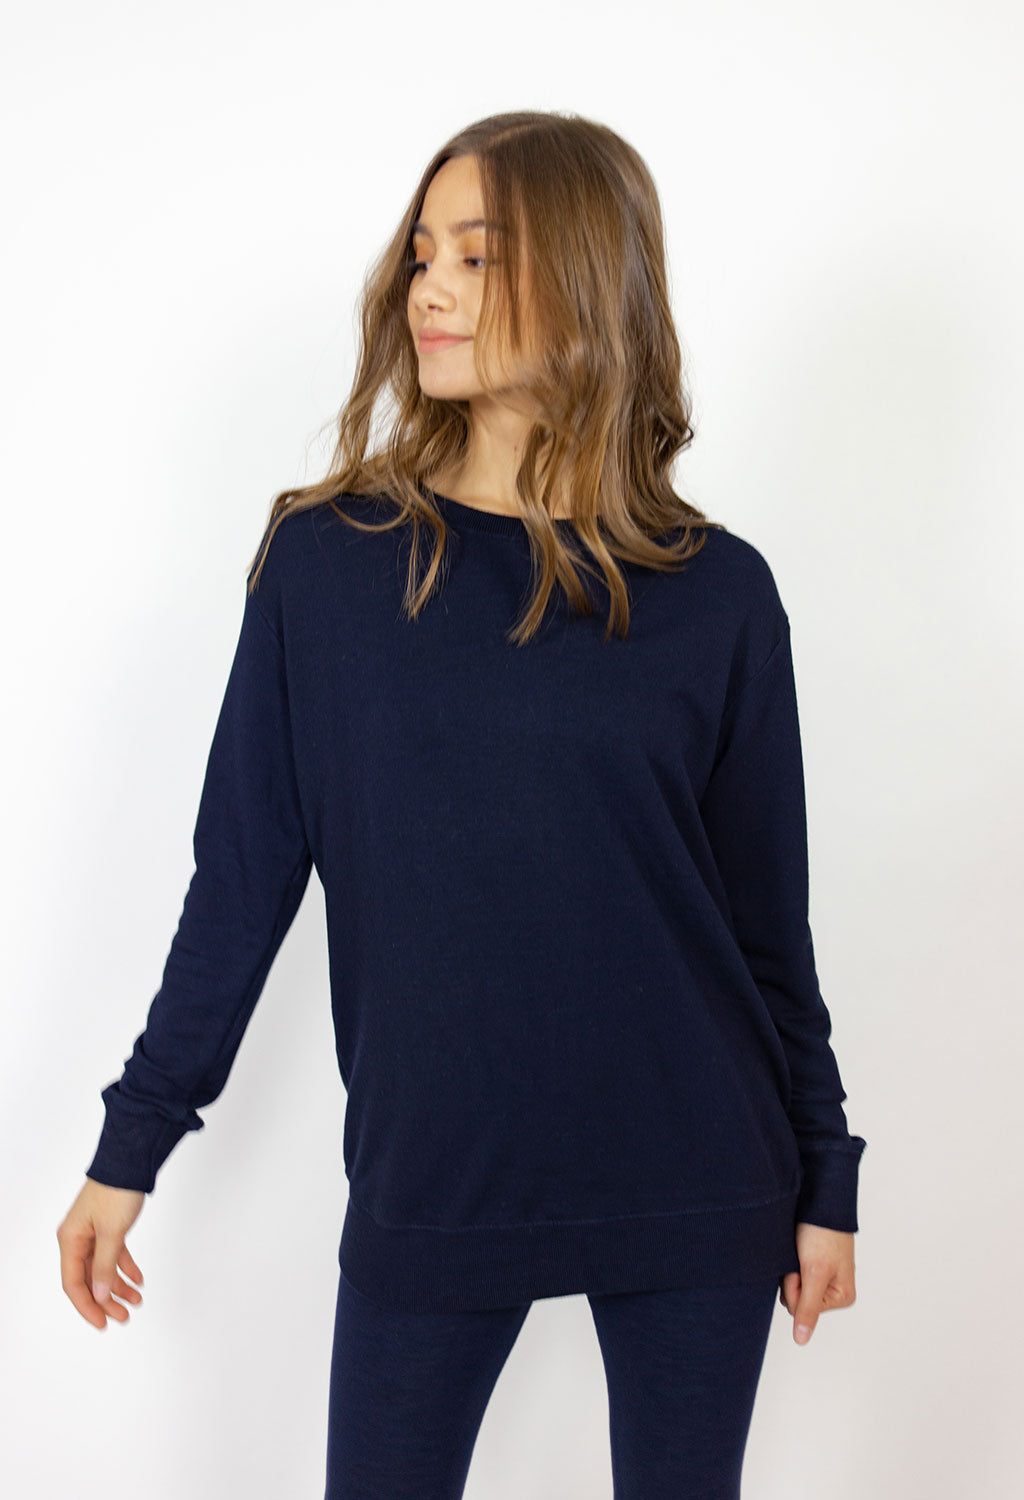 Sundry Tunic Pullover - RUST & Co.